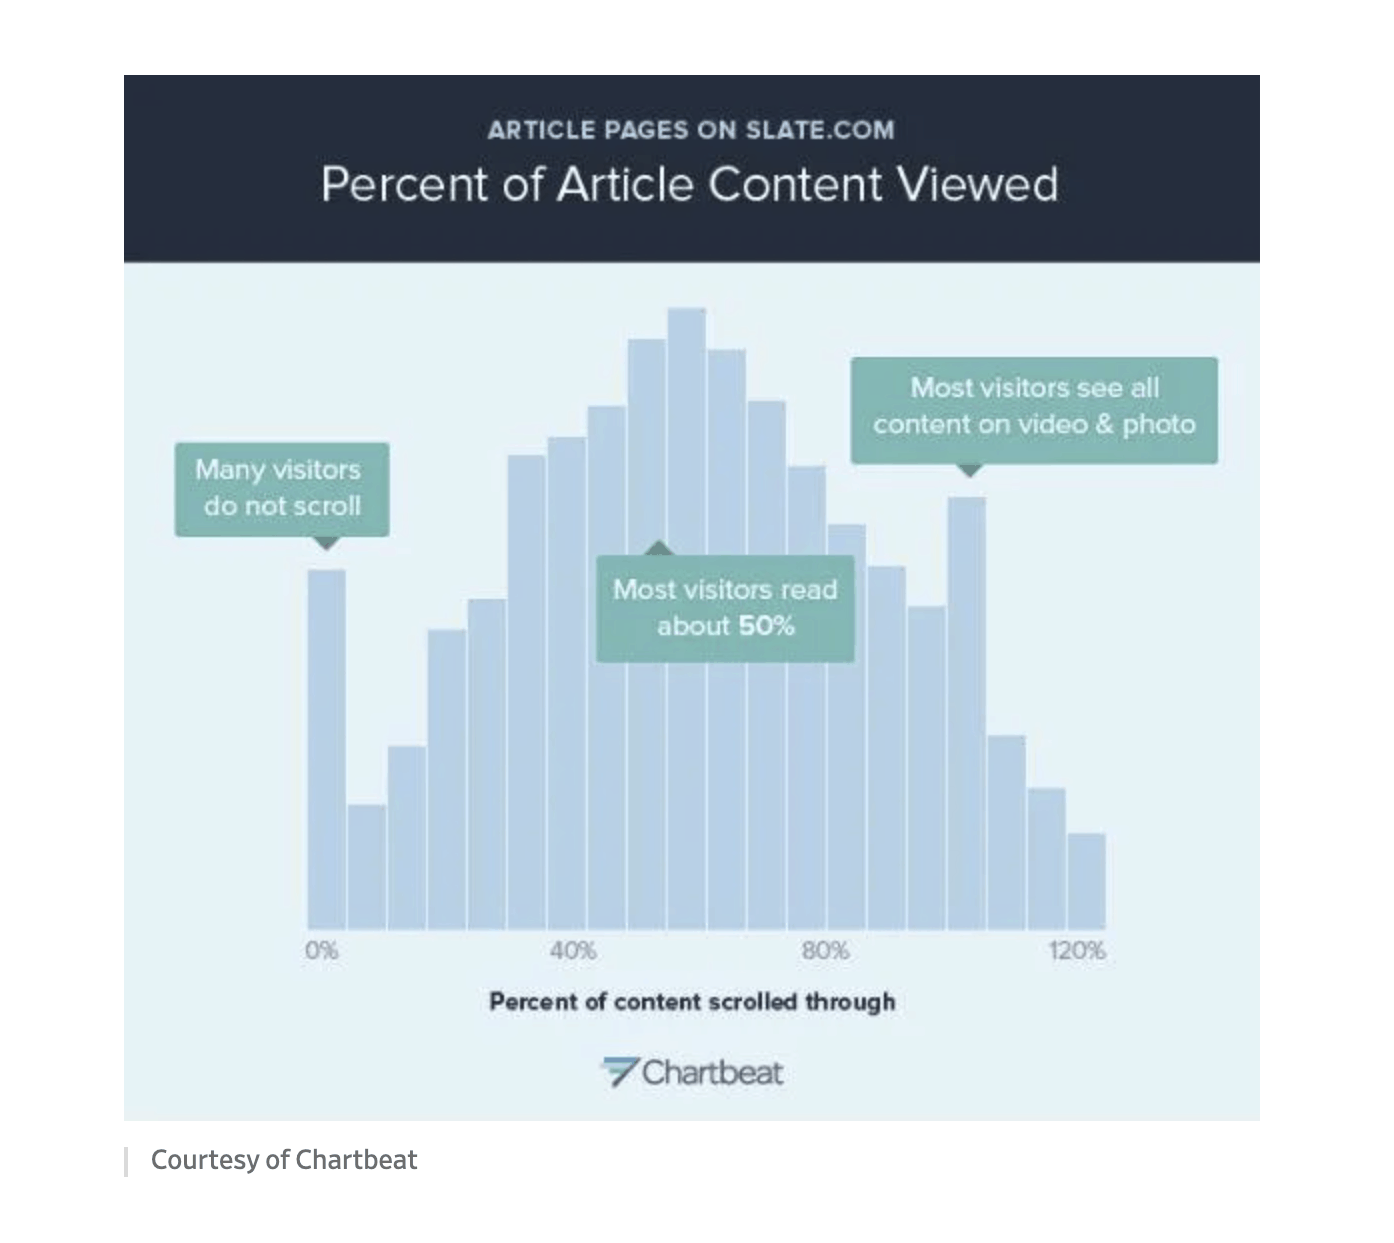 Graph showing the percent of content viewed, demonstrating the need to learn how to write better.